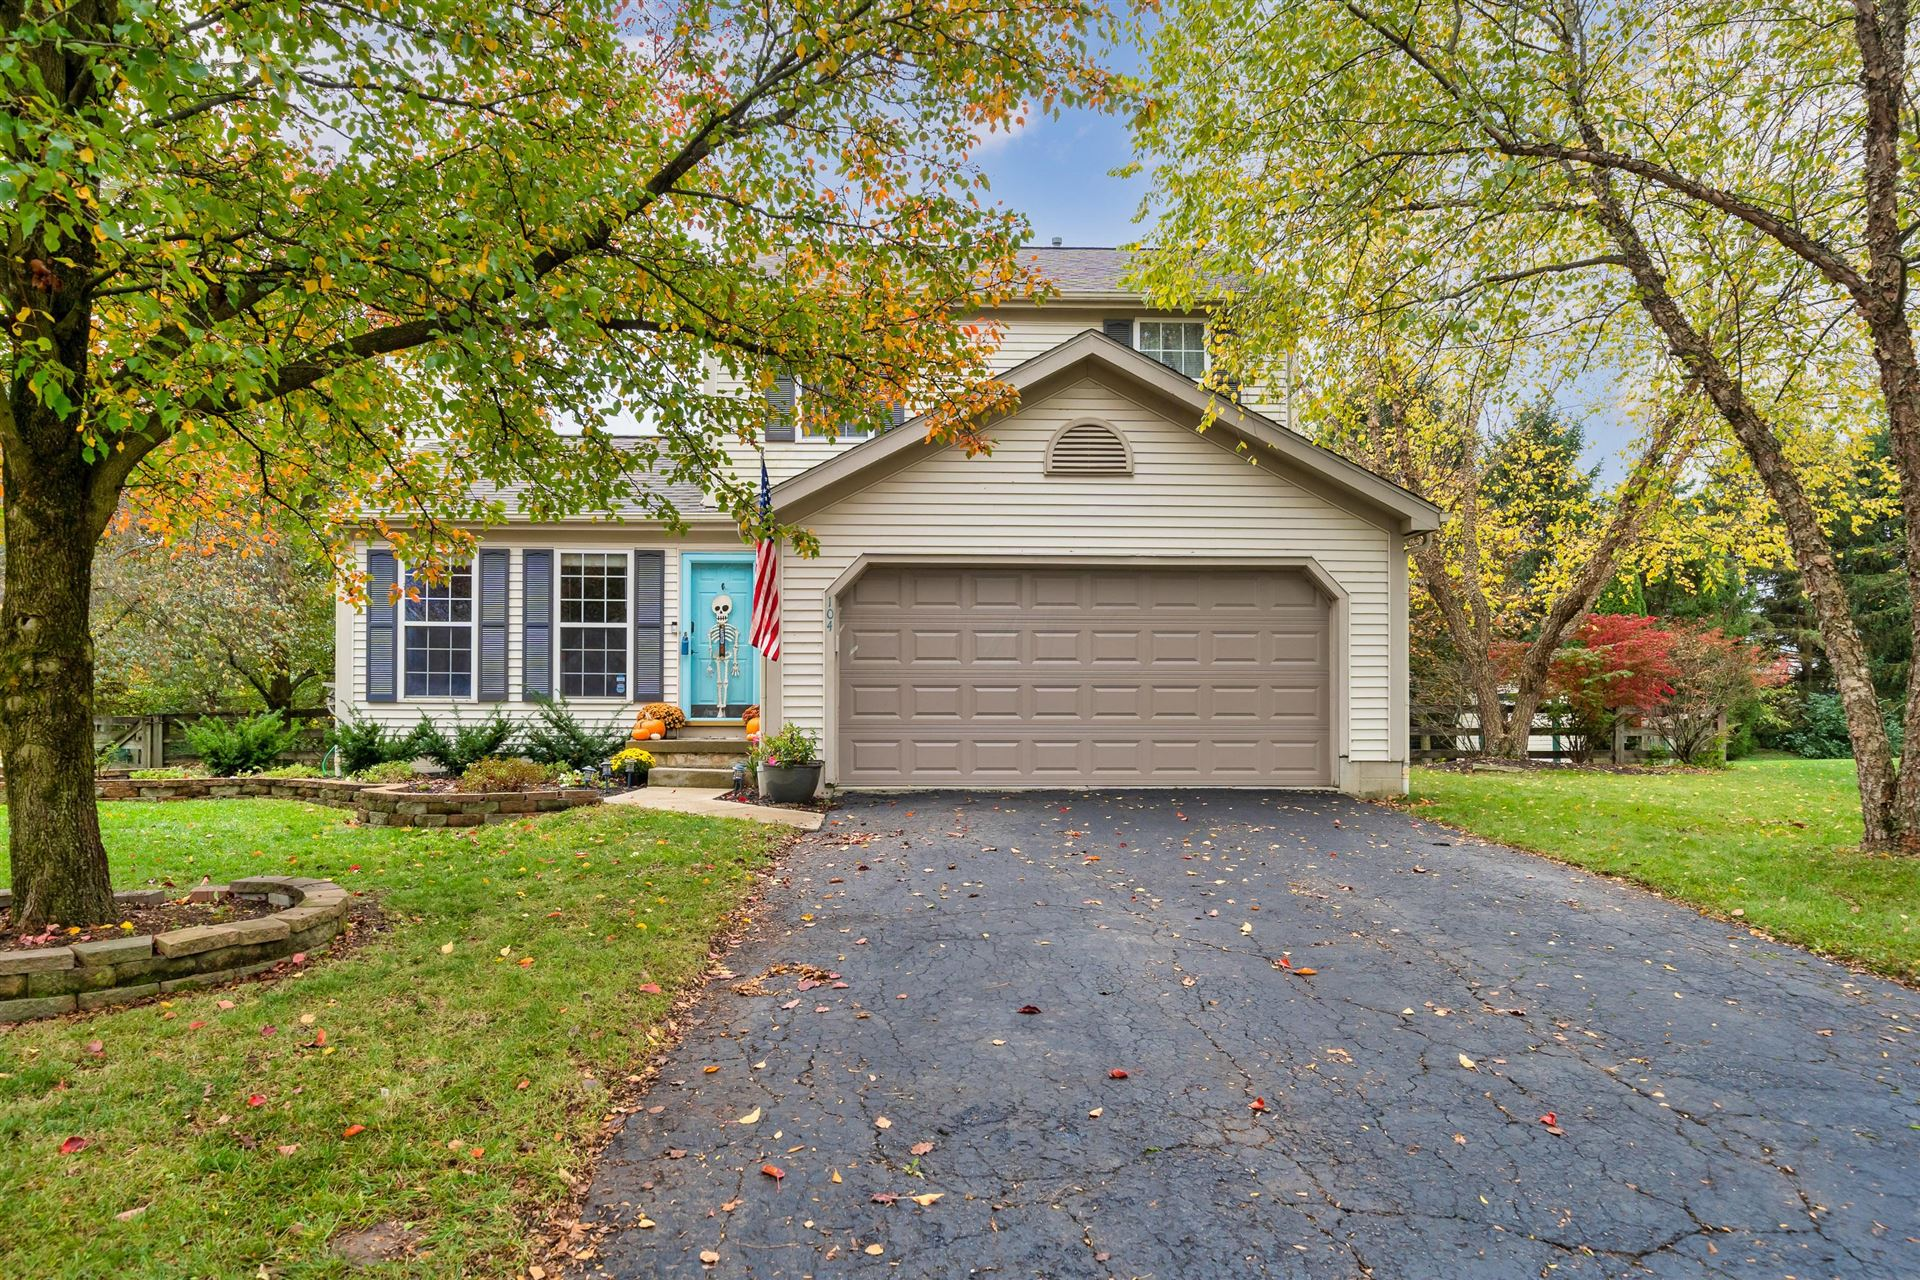 Photo of 104 Hale Court, Delaware, OH 43015 (MLS # 220038268)